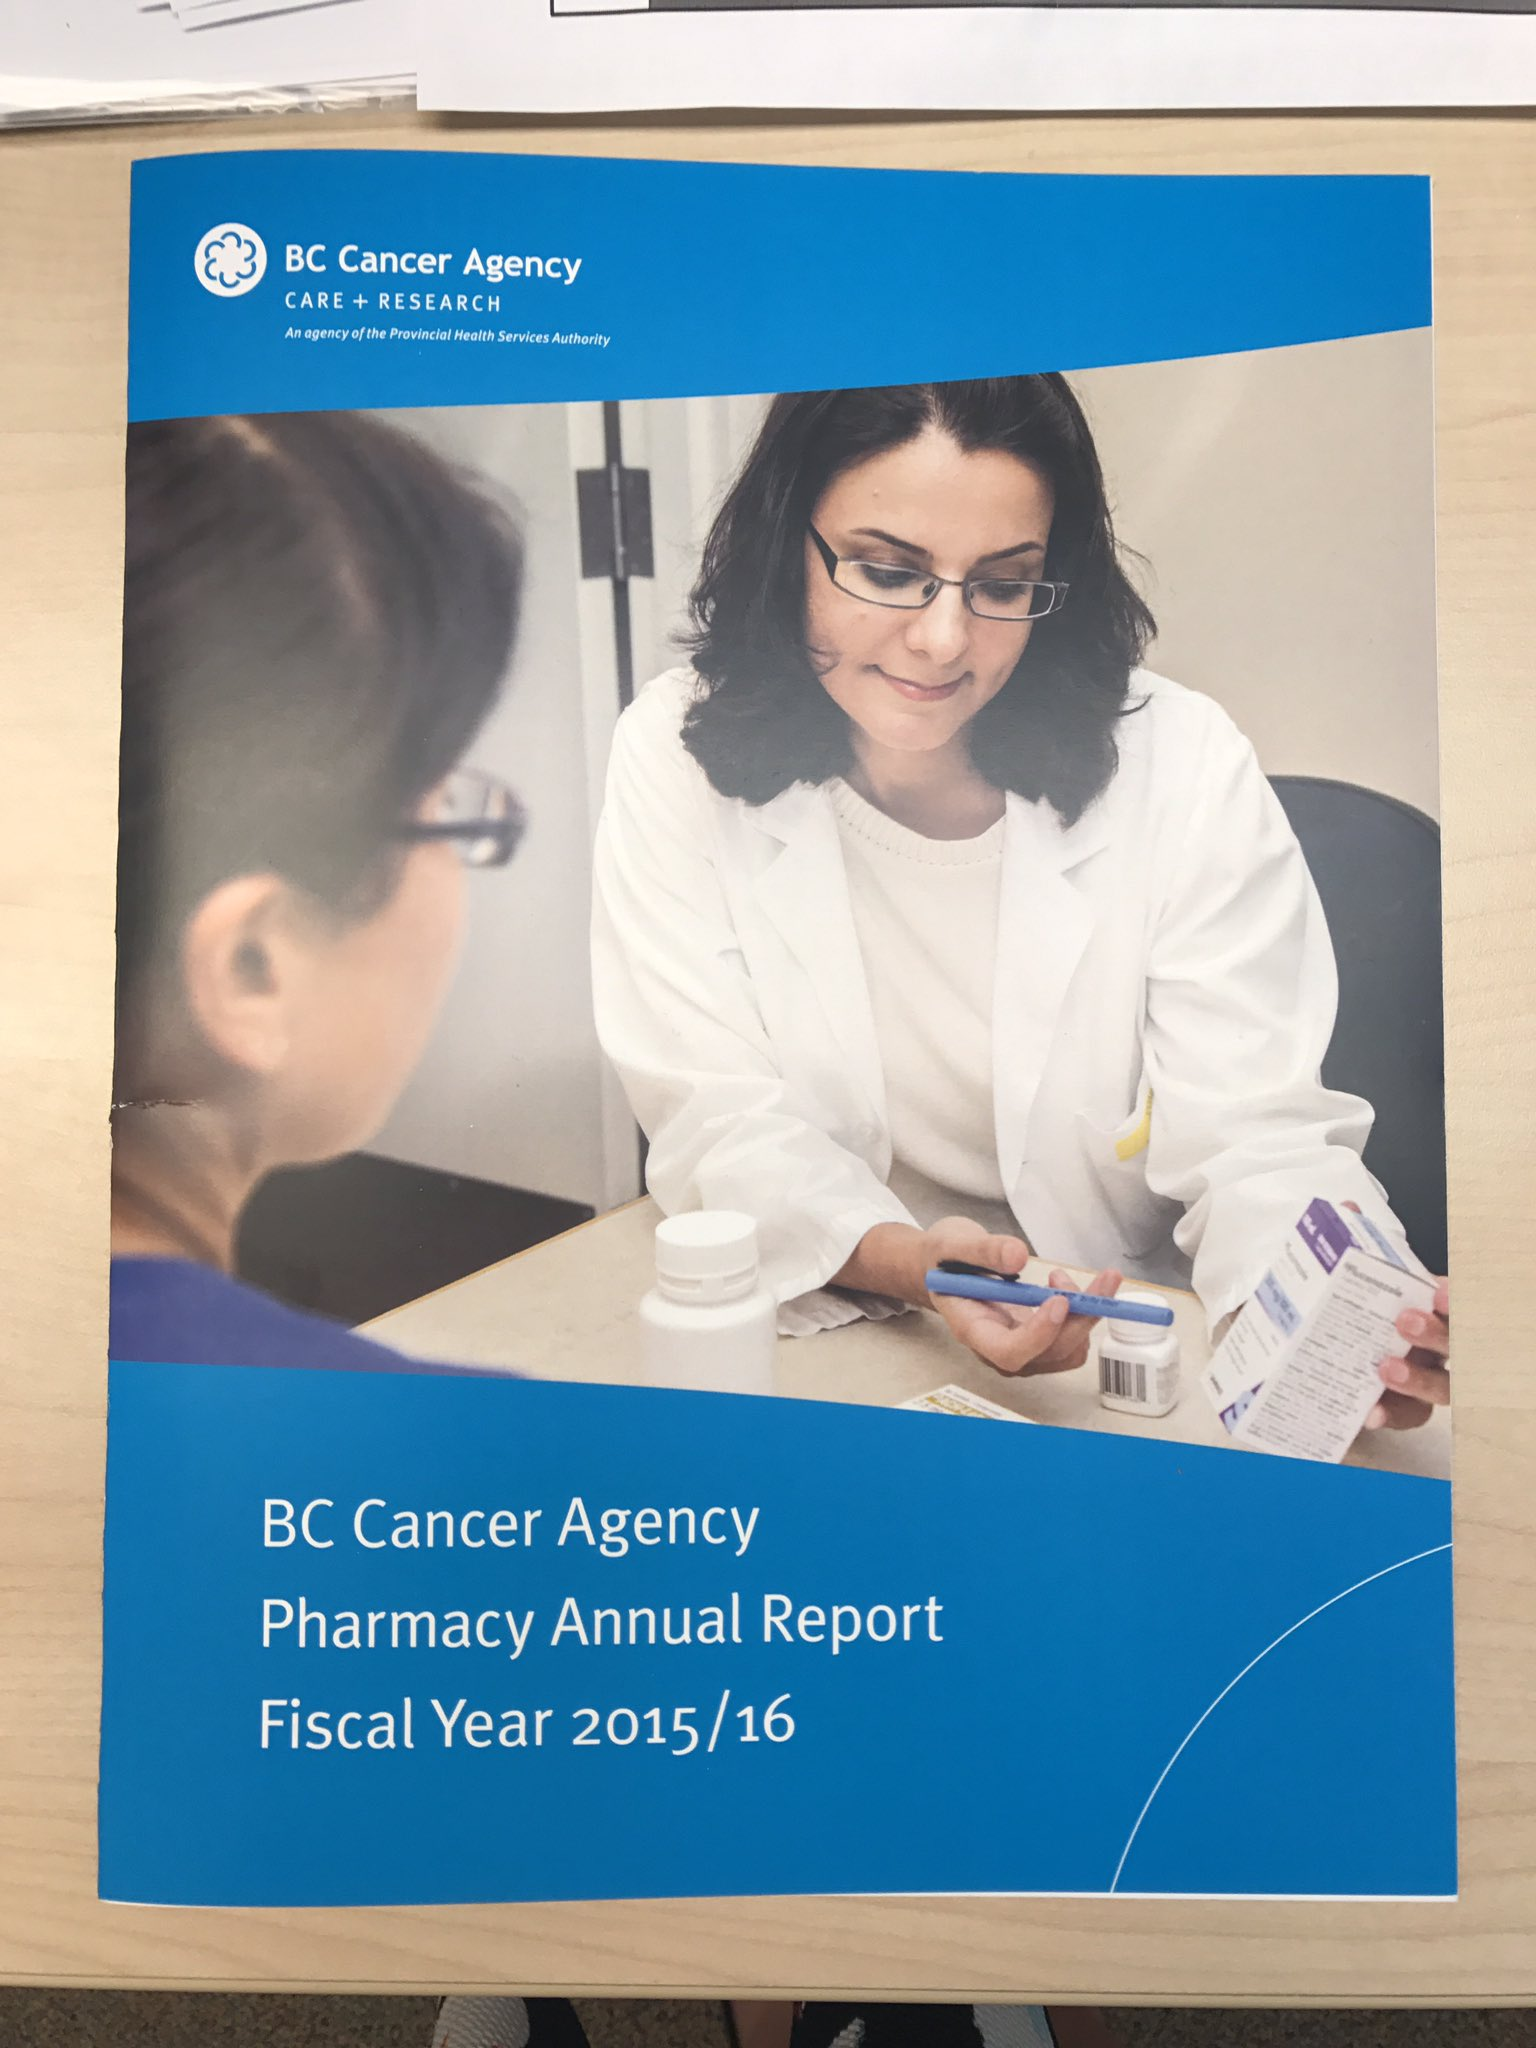 Pharmacy Awareness Month #PAM2017 Pharmacy Annual Report highlights achievements during the year! https://t.co/MkopUg7DdC